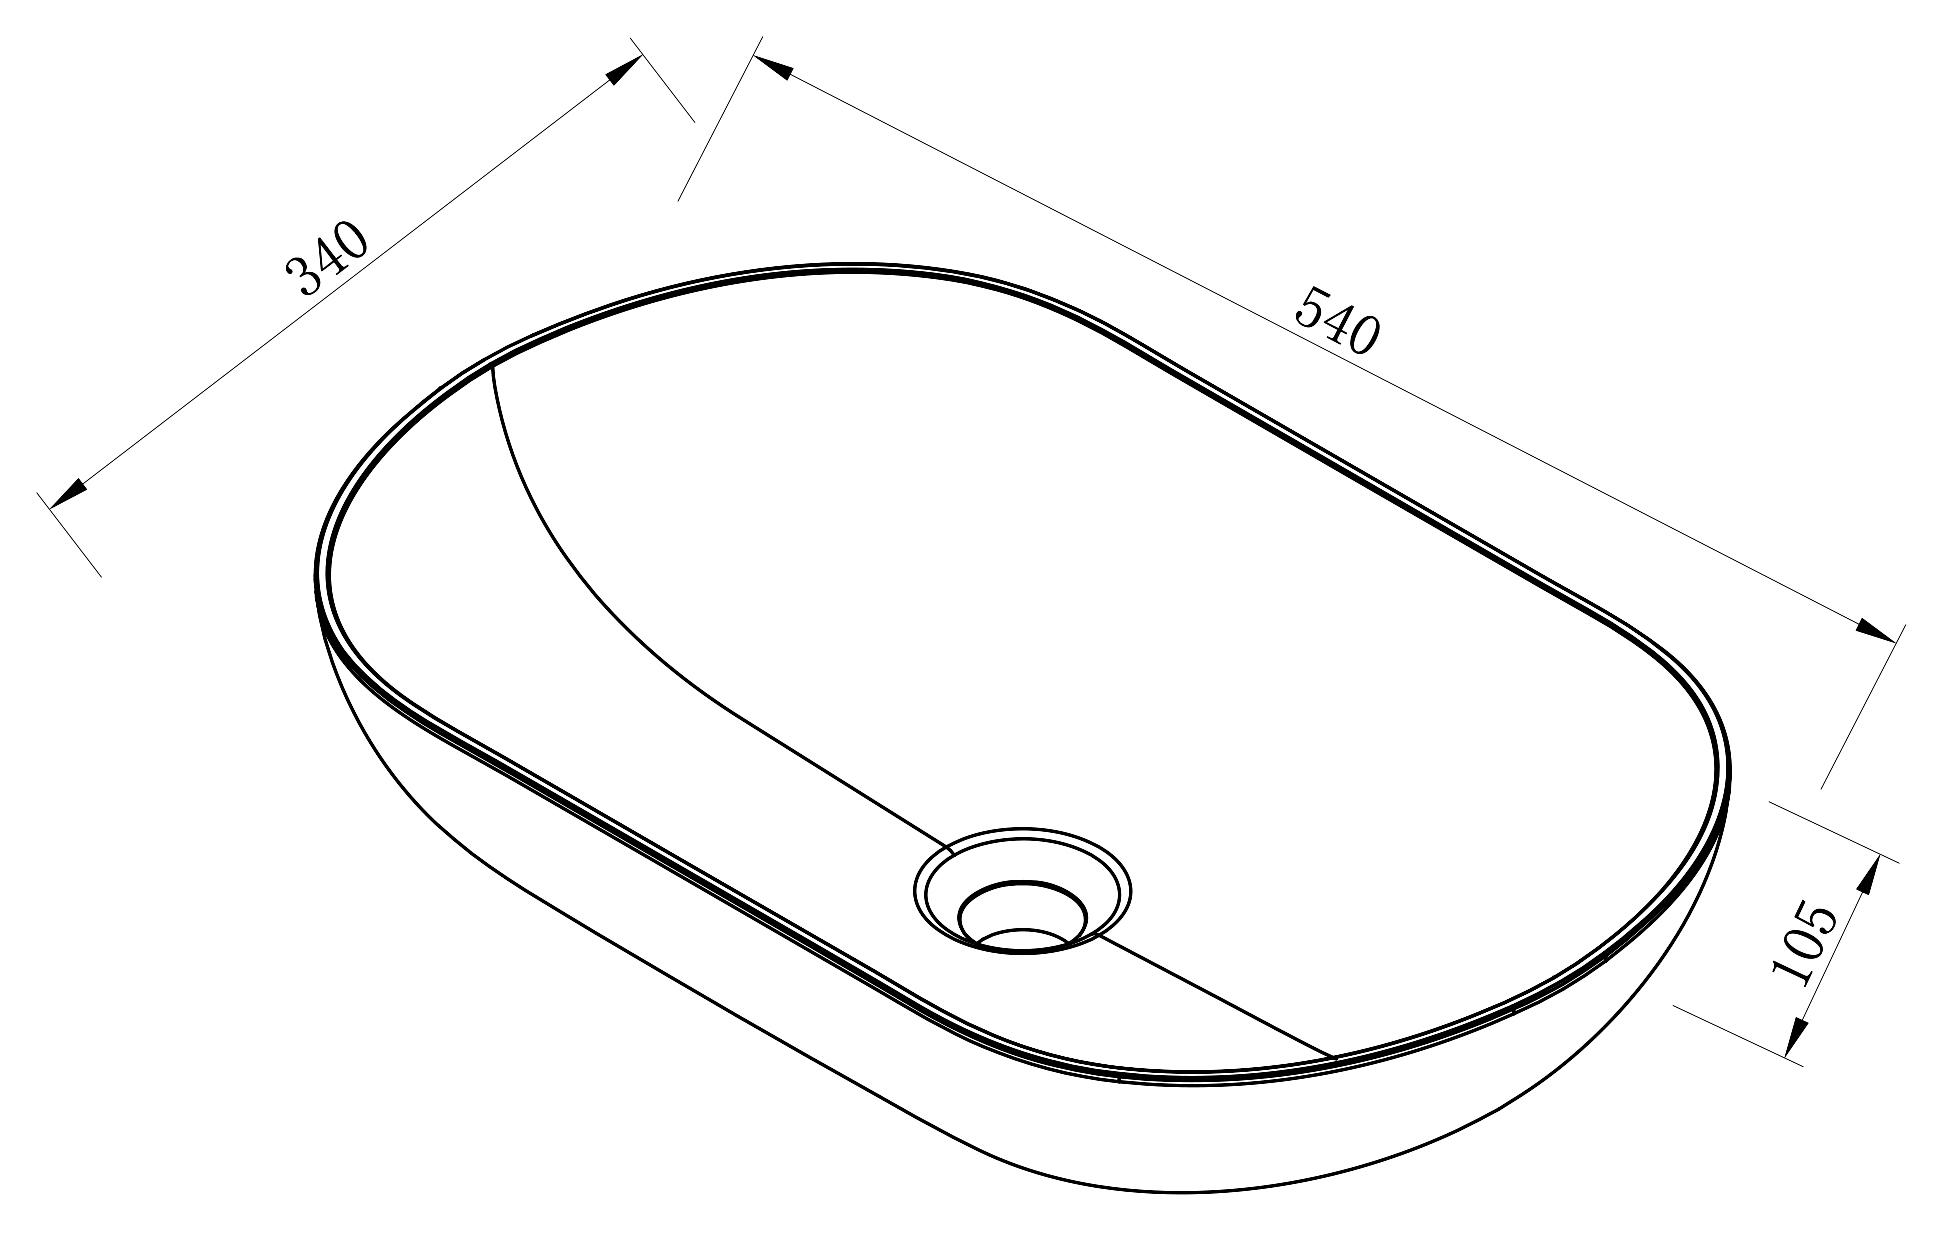 Counter top basin O-540 Drawing